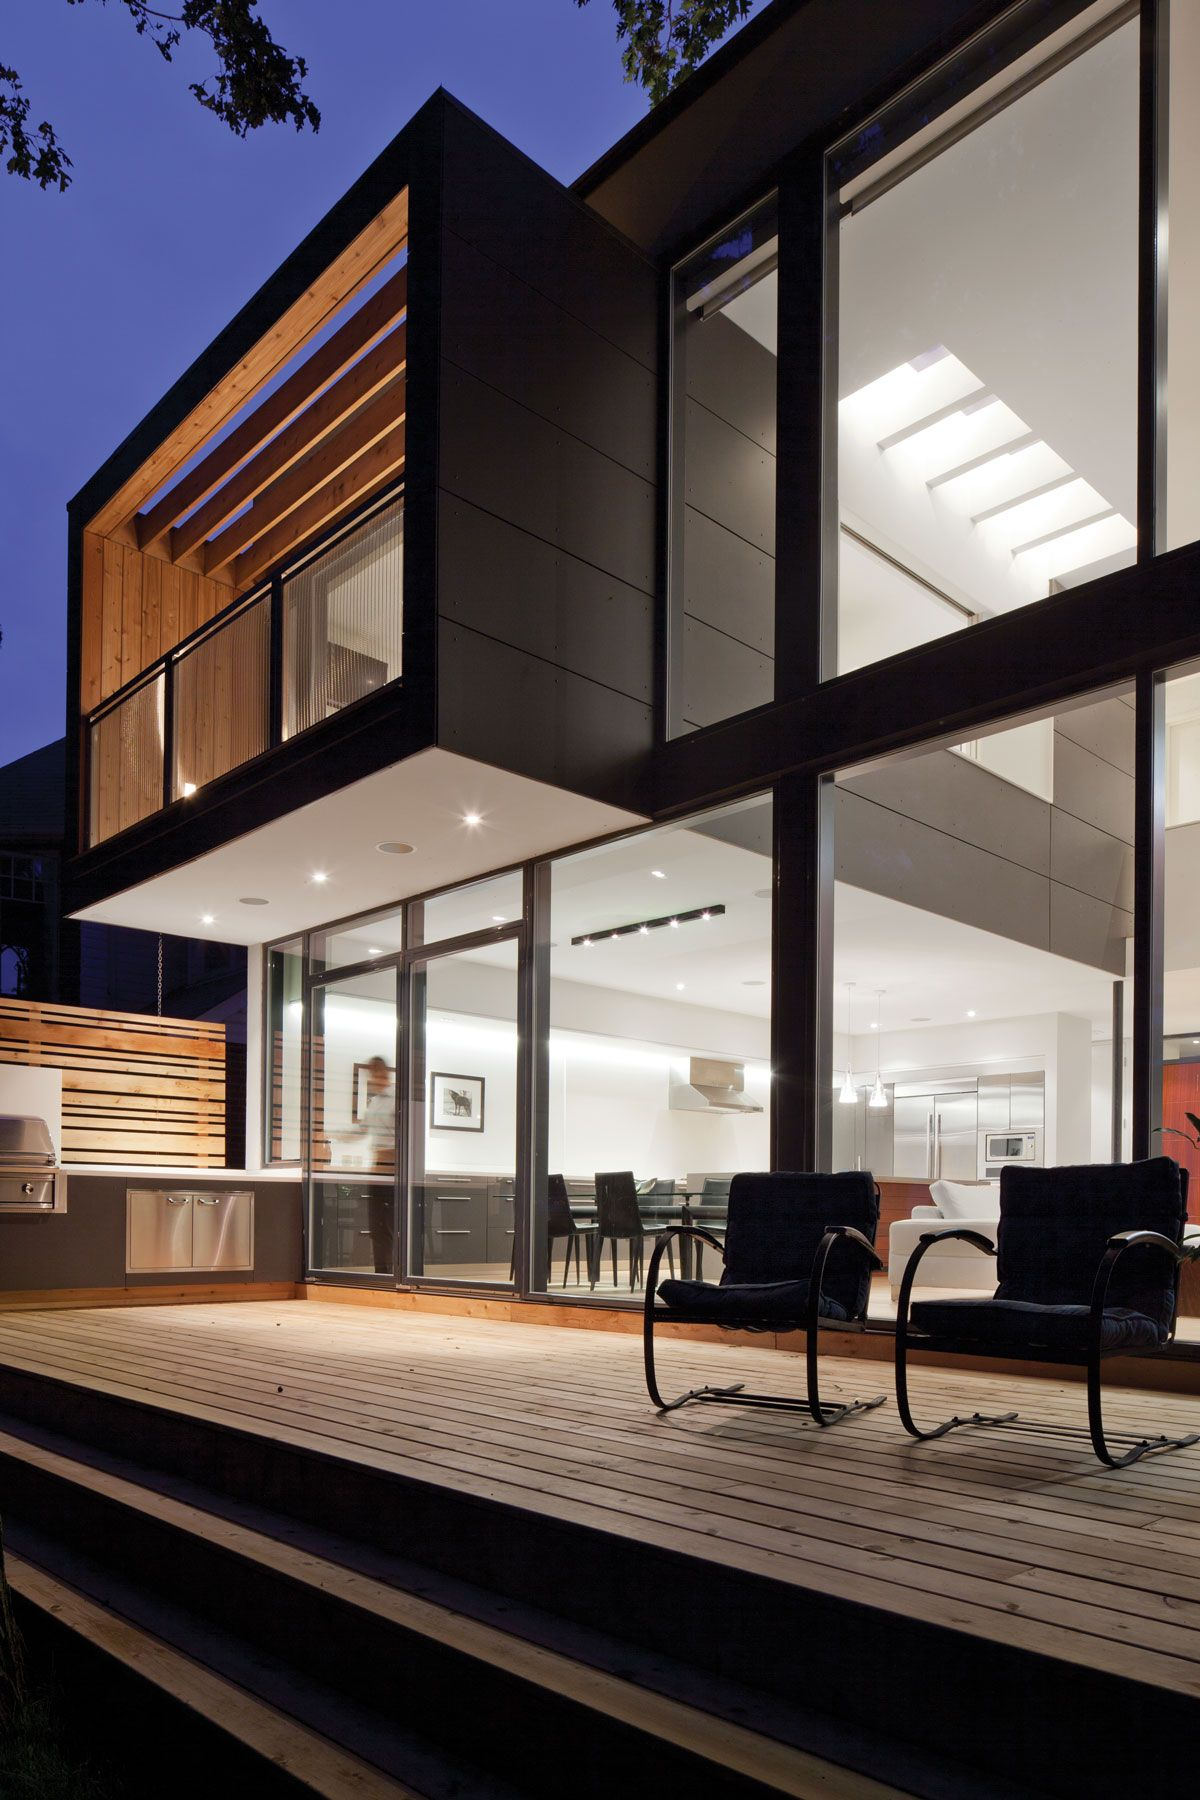 Amazing Modern Homes really great steel and glass modern home. i have a love of modern